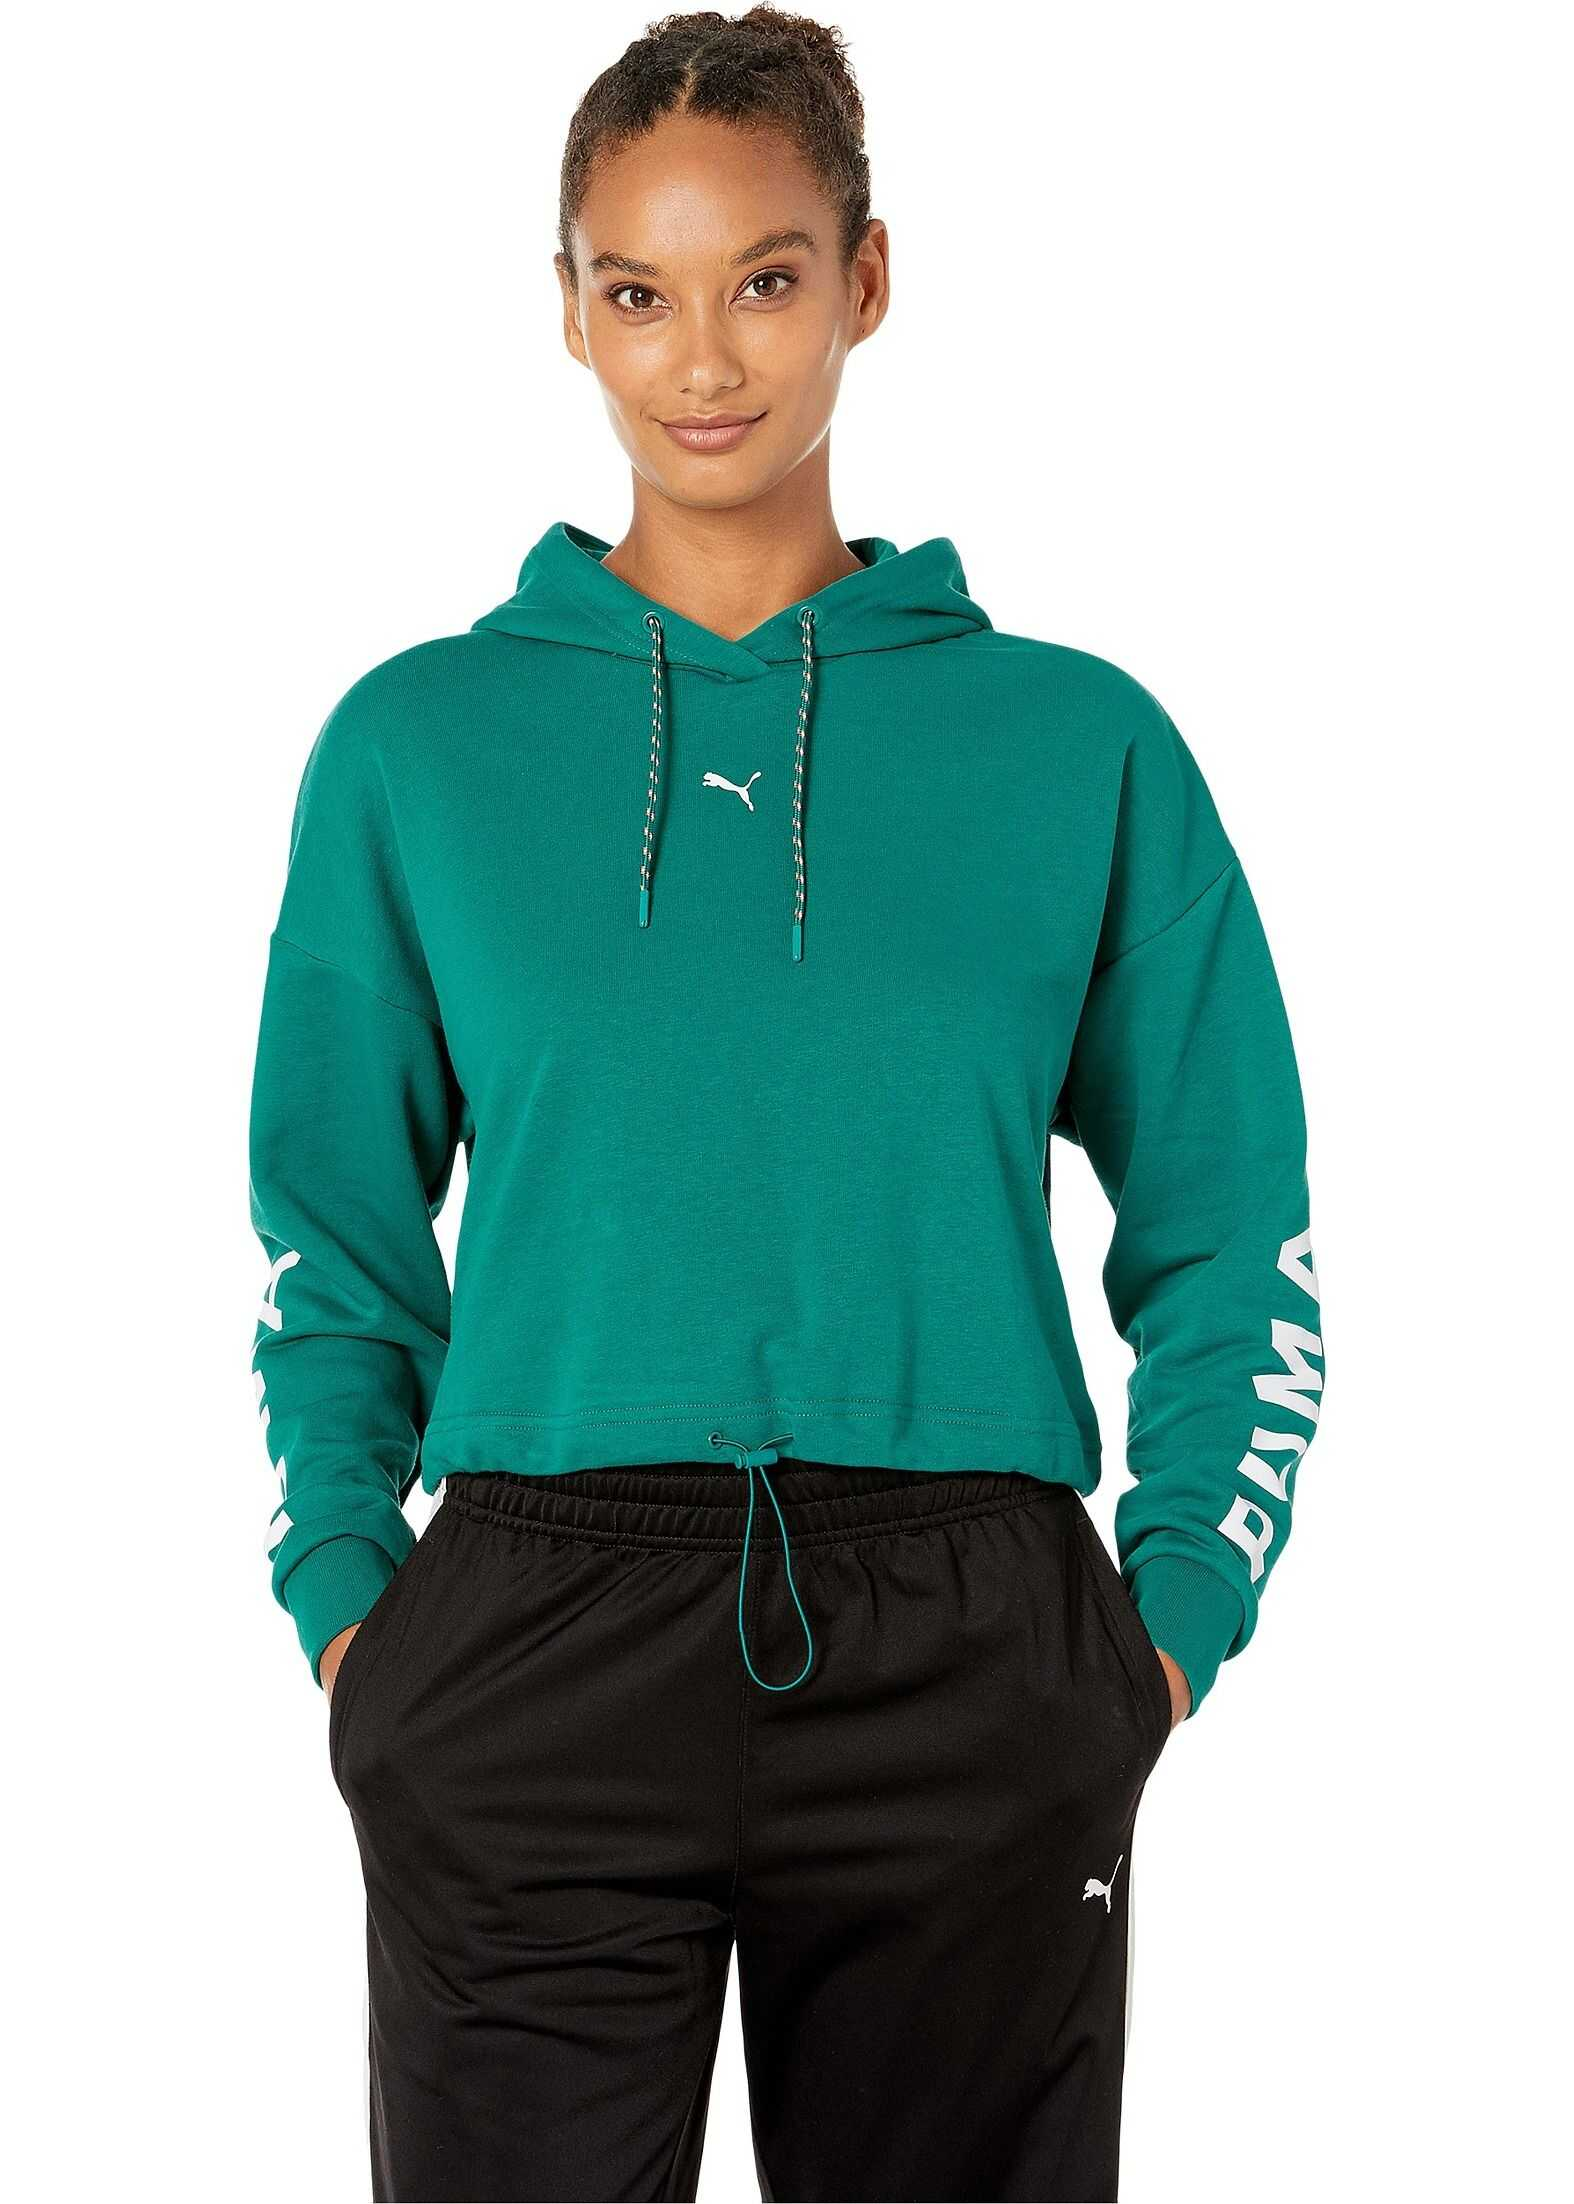 PUMA Chase Cropped Hoodie Teal Green